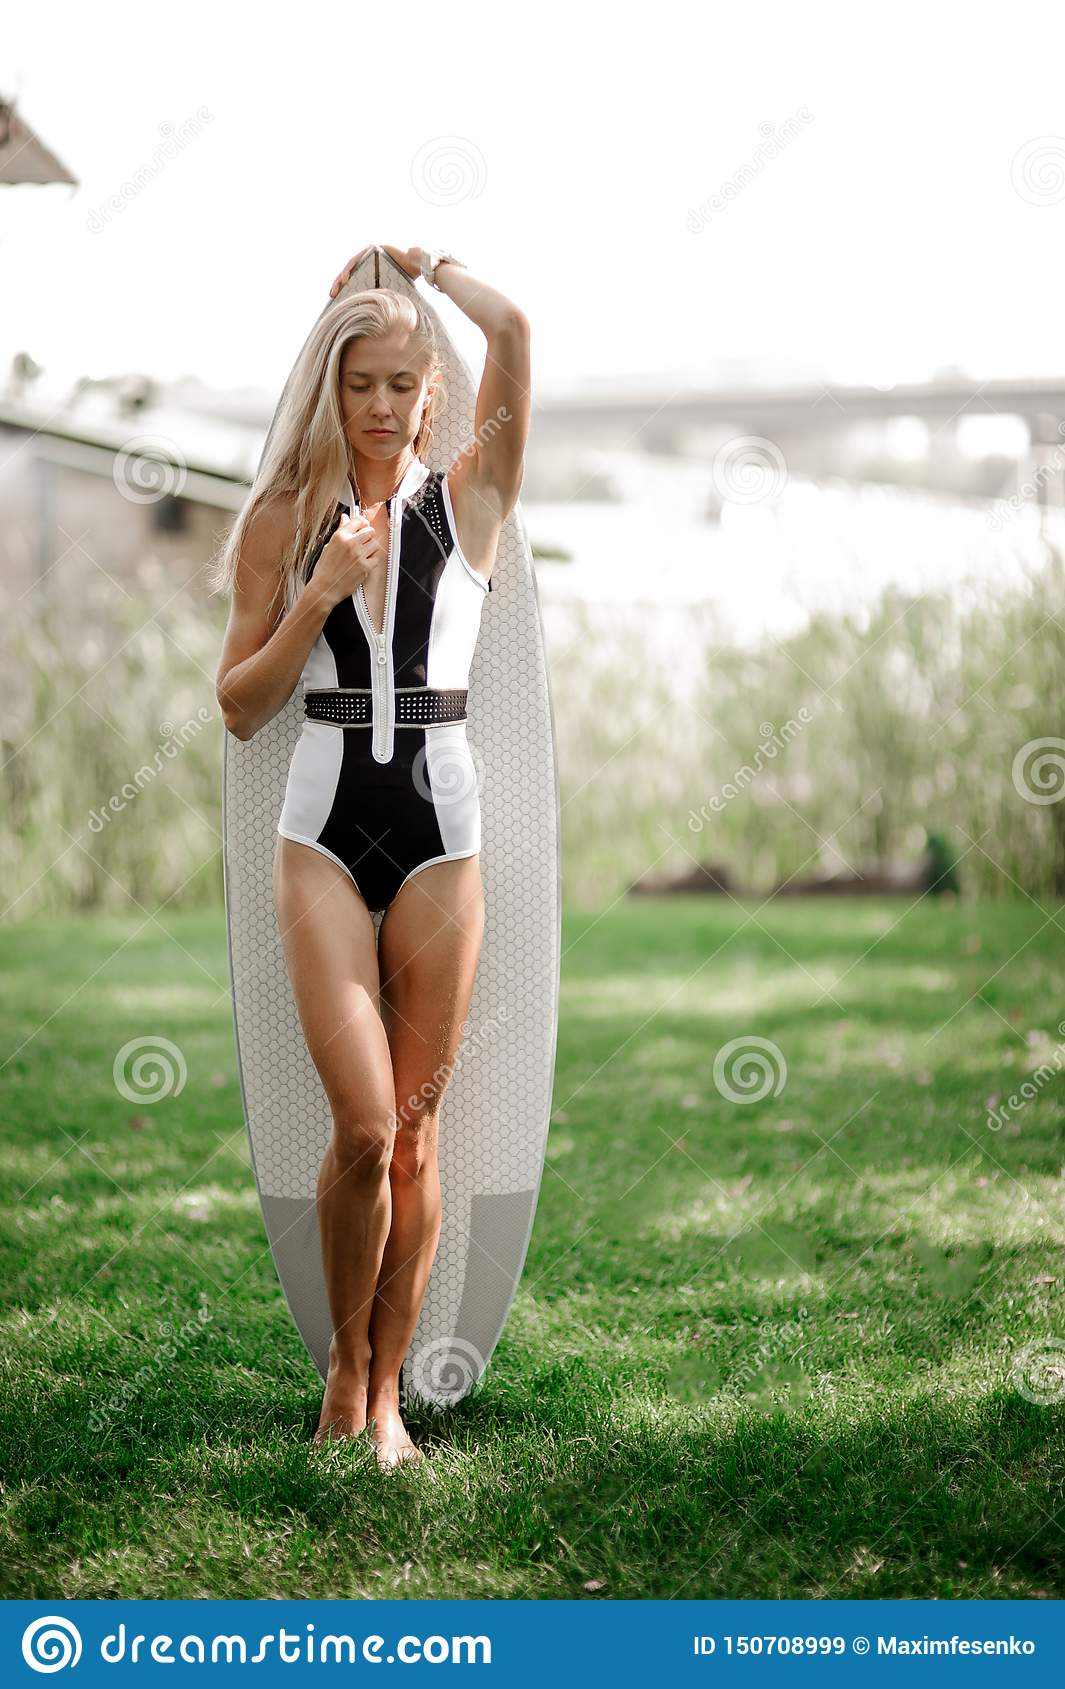 Athletic woman poses with a surfing board